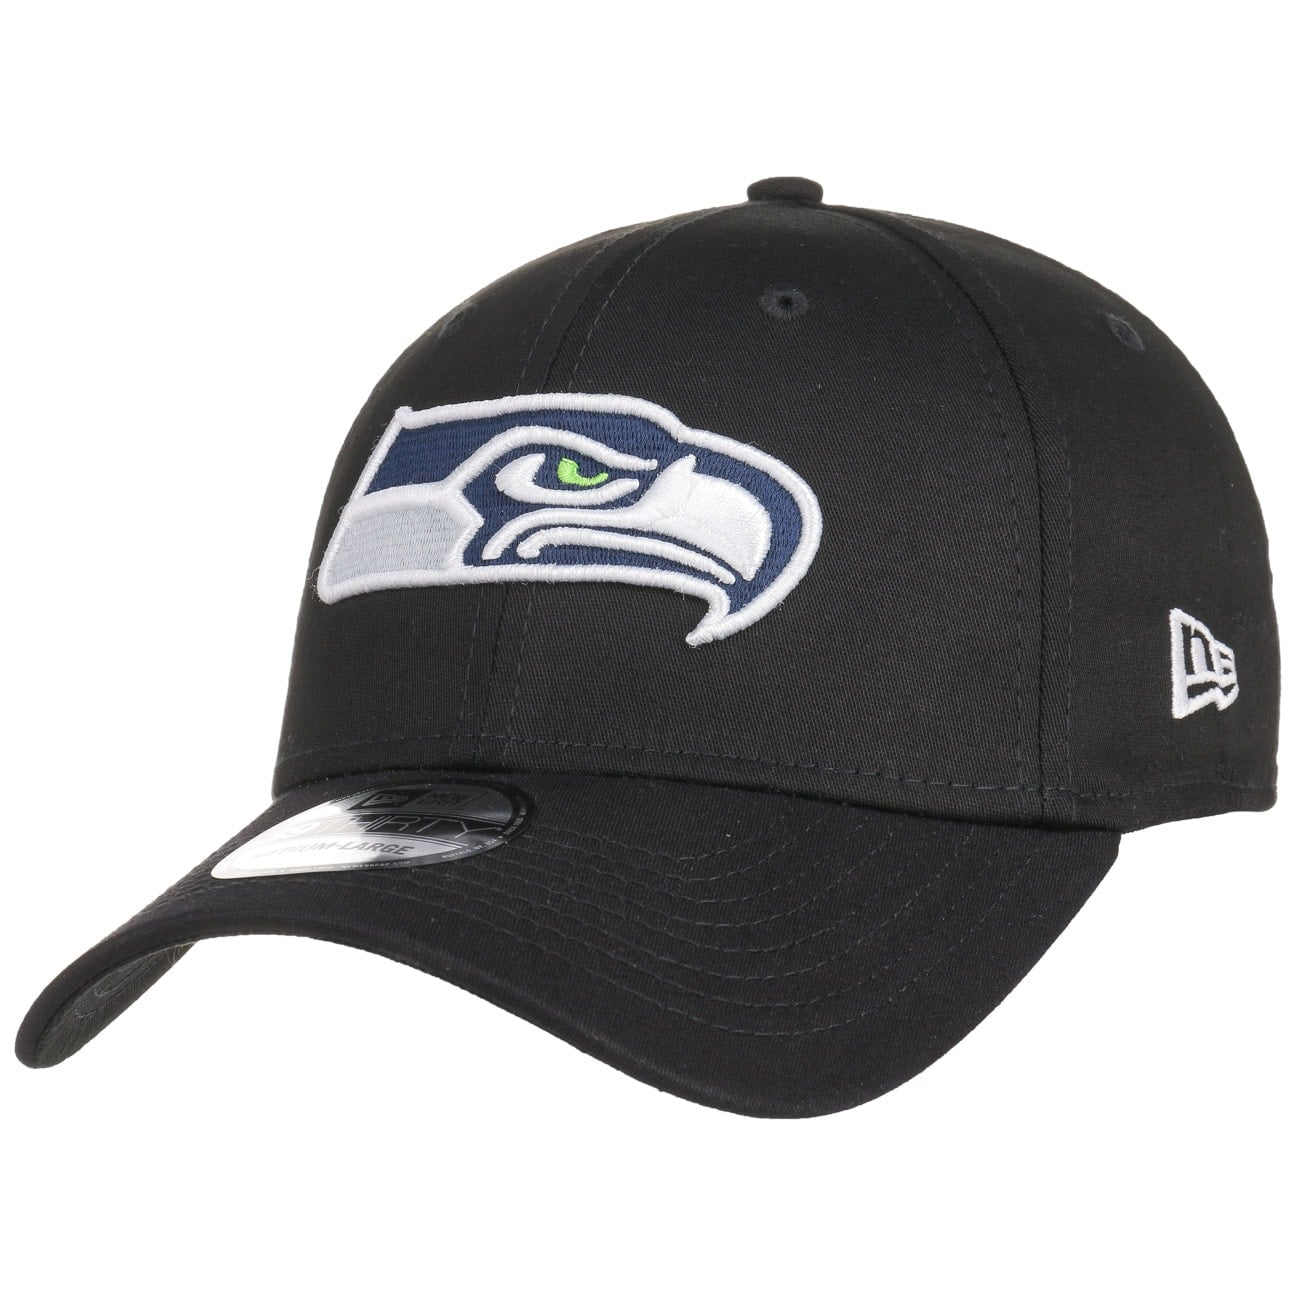 Gorra 39Thirty Black Base Seahawks by New Era